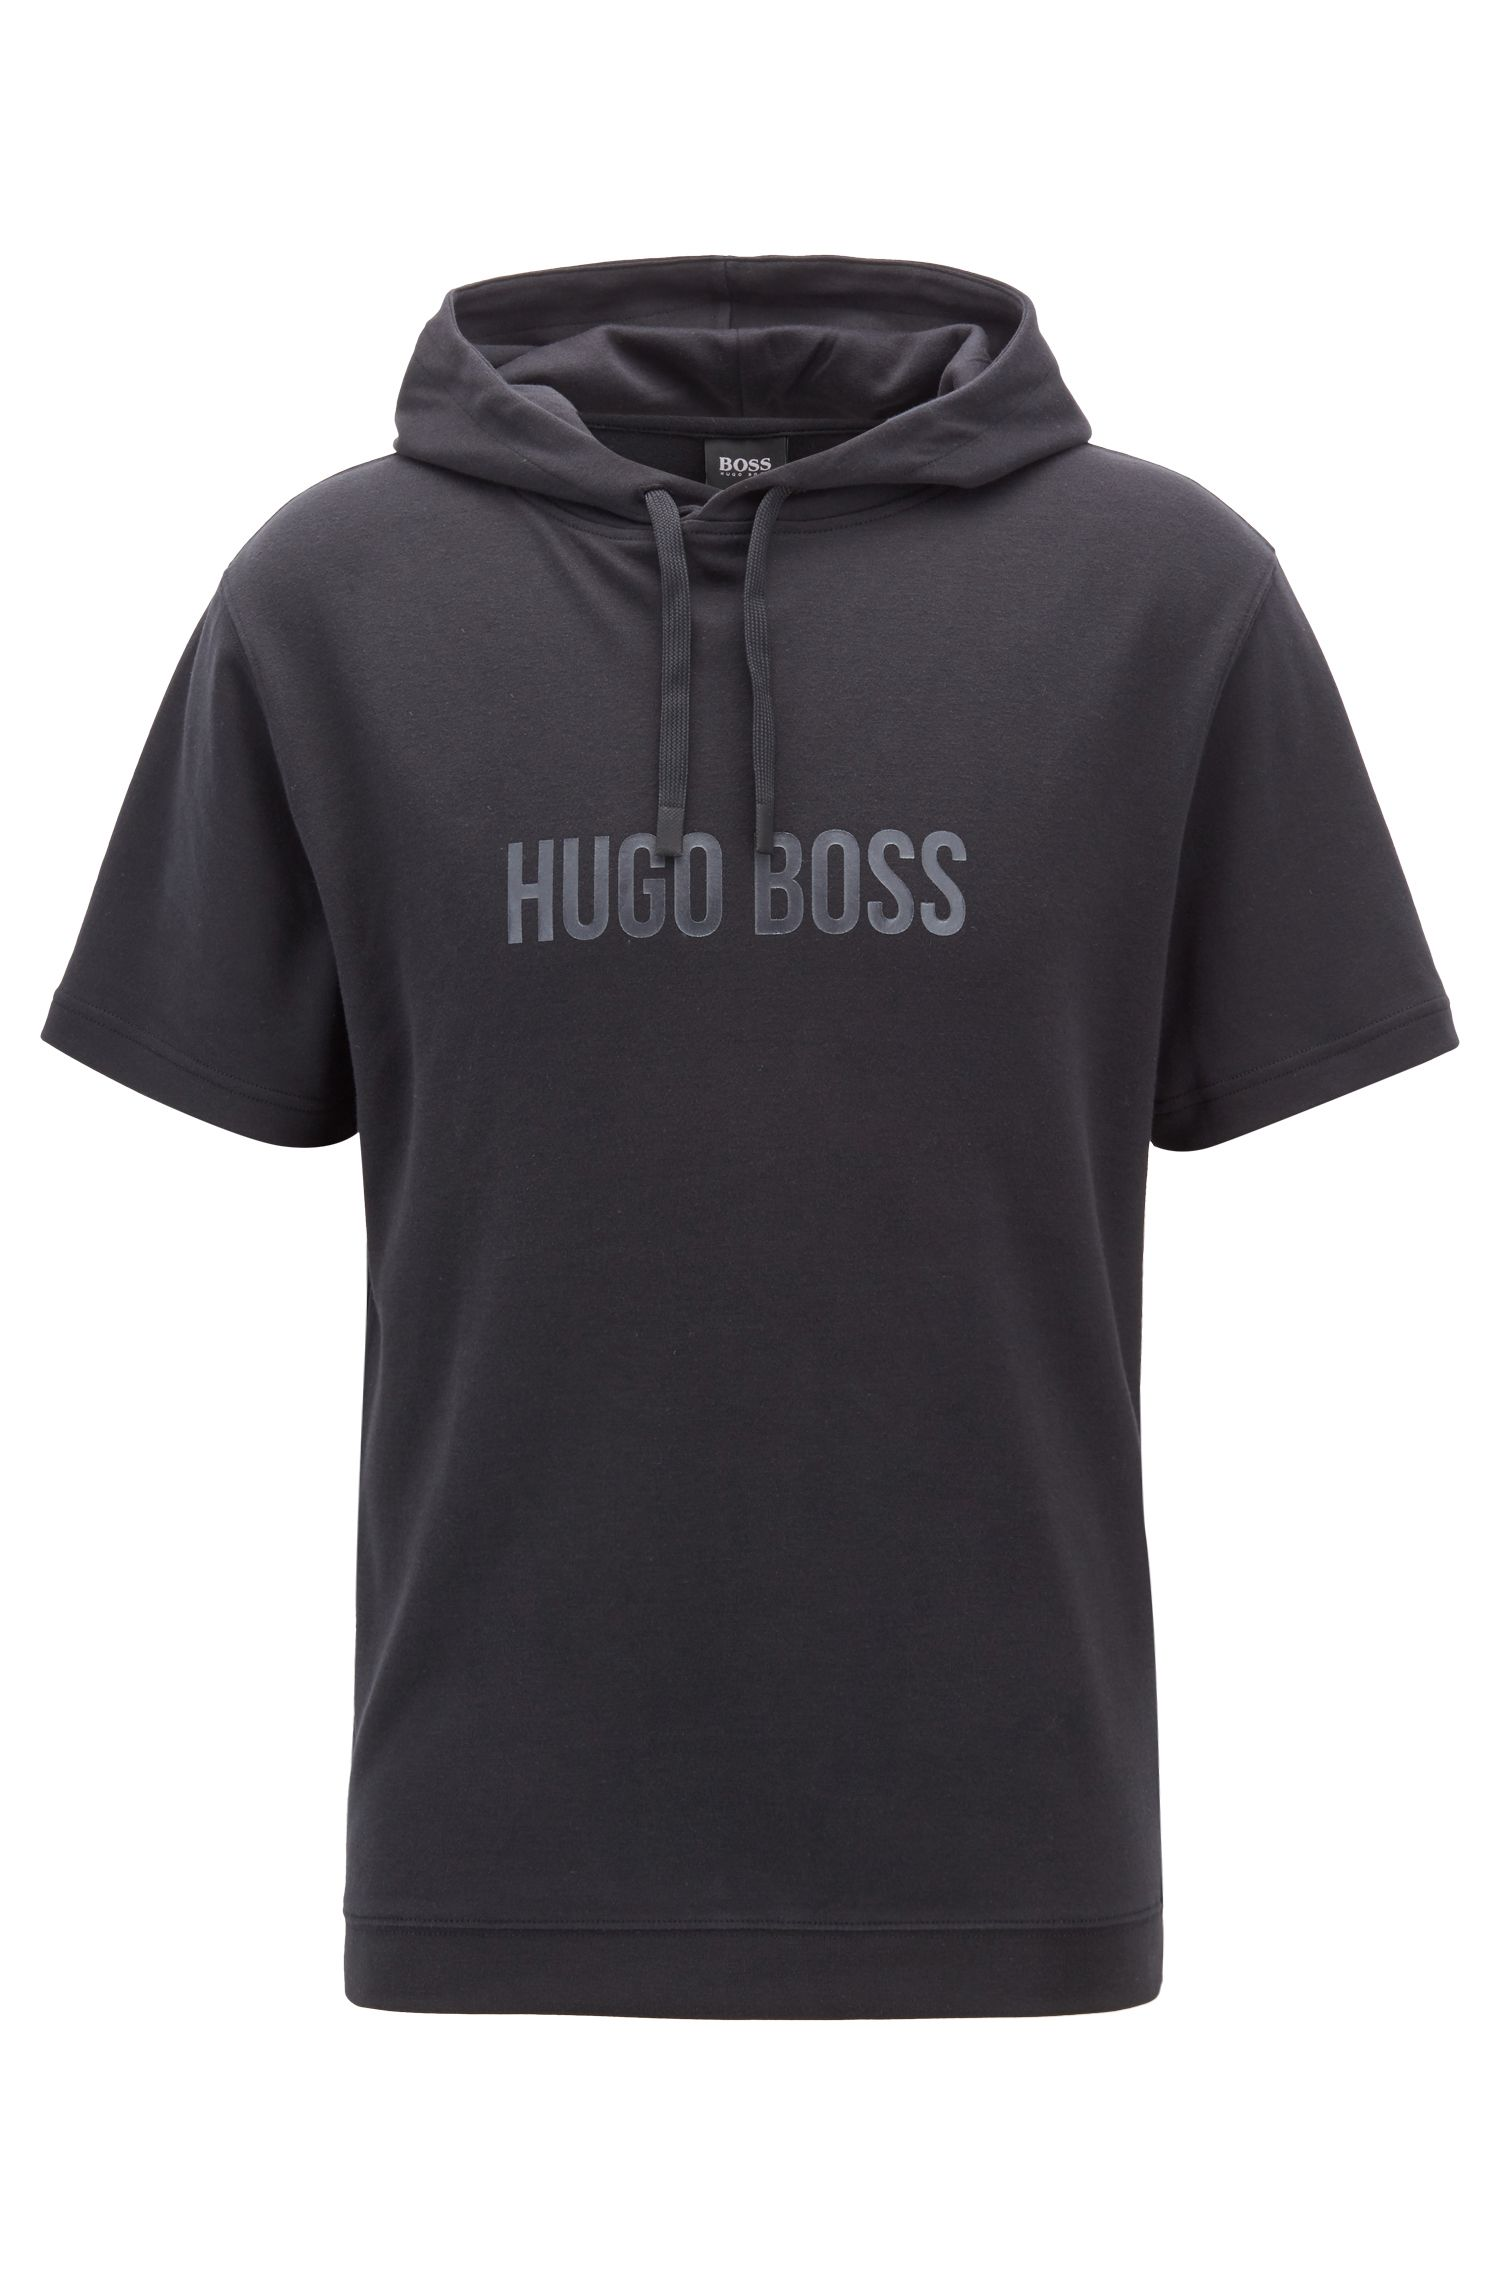 Hooded loungewear T-shirt in cotton with lustrous logo print, Black